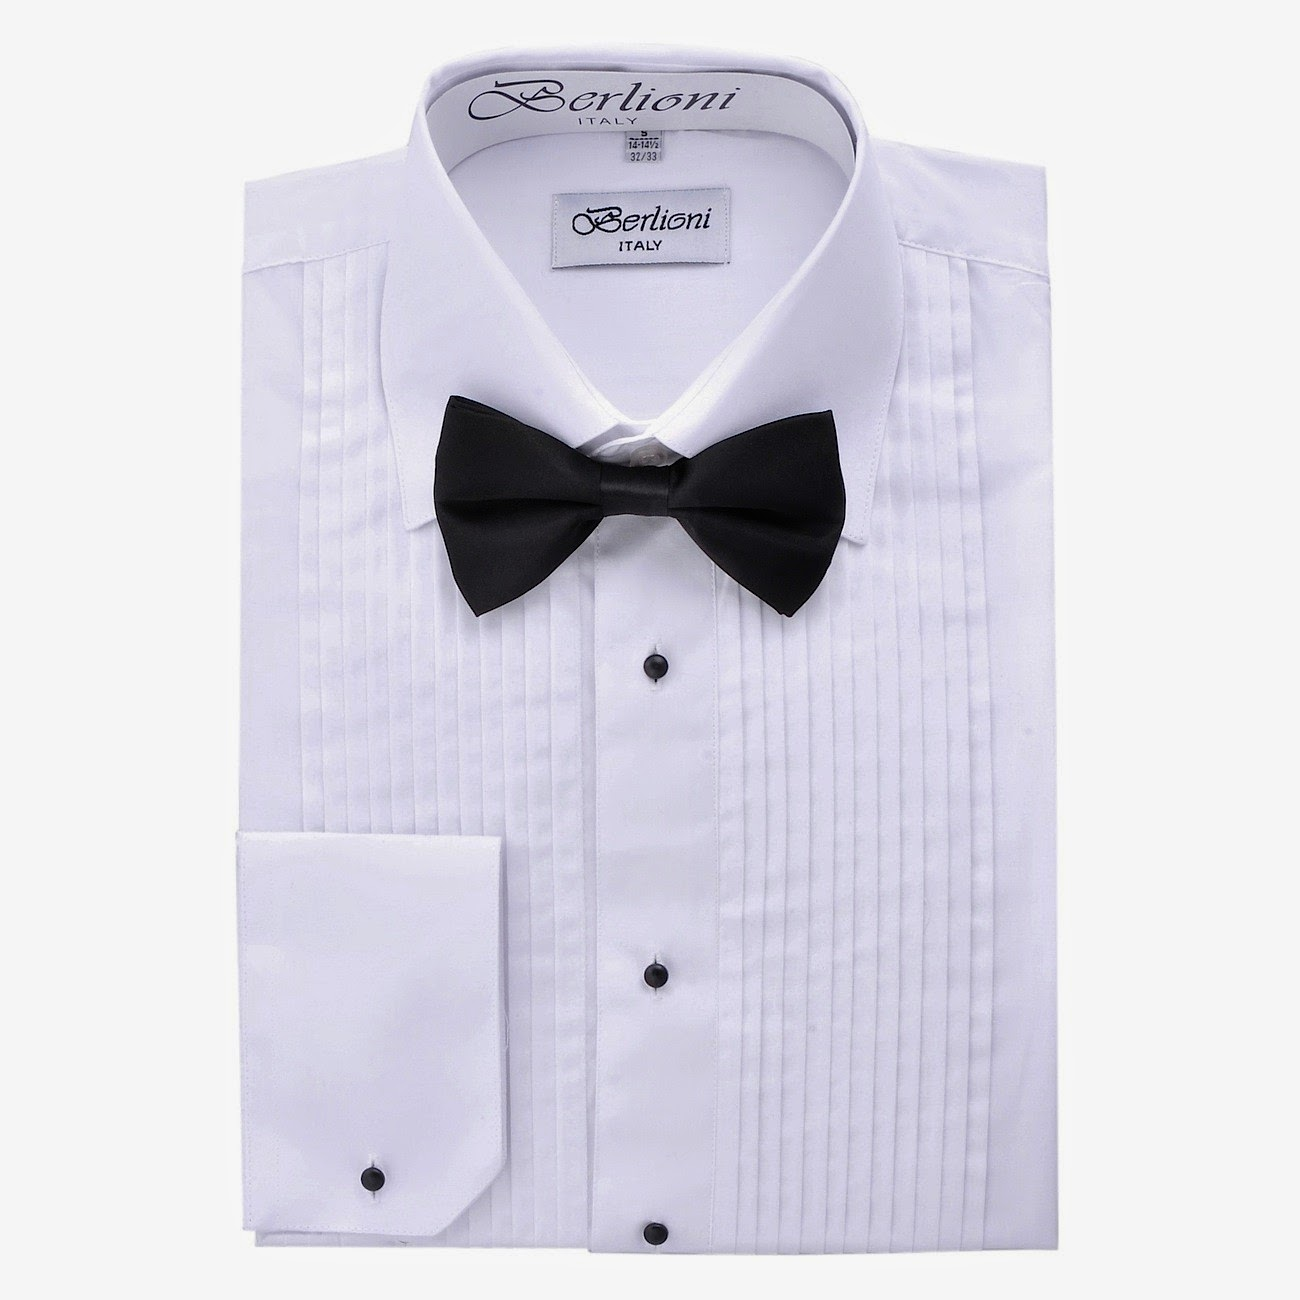 http://www.buyyourties.com/bdss-white-p-53559.html